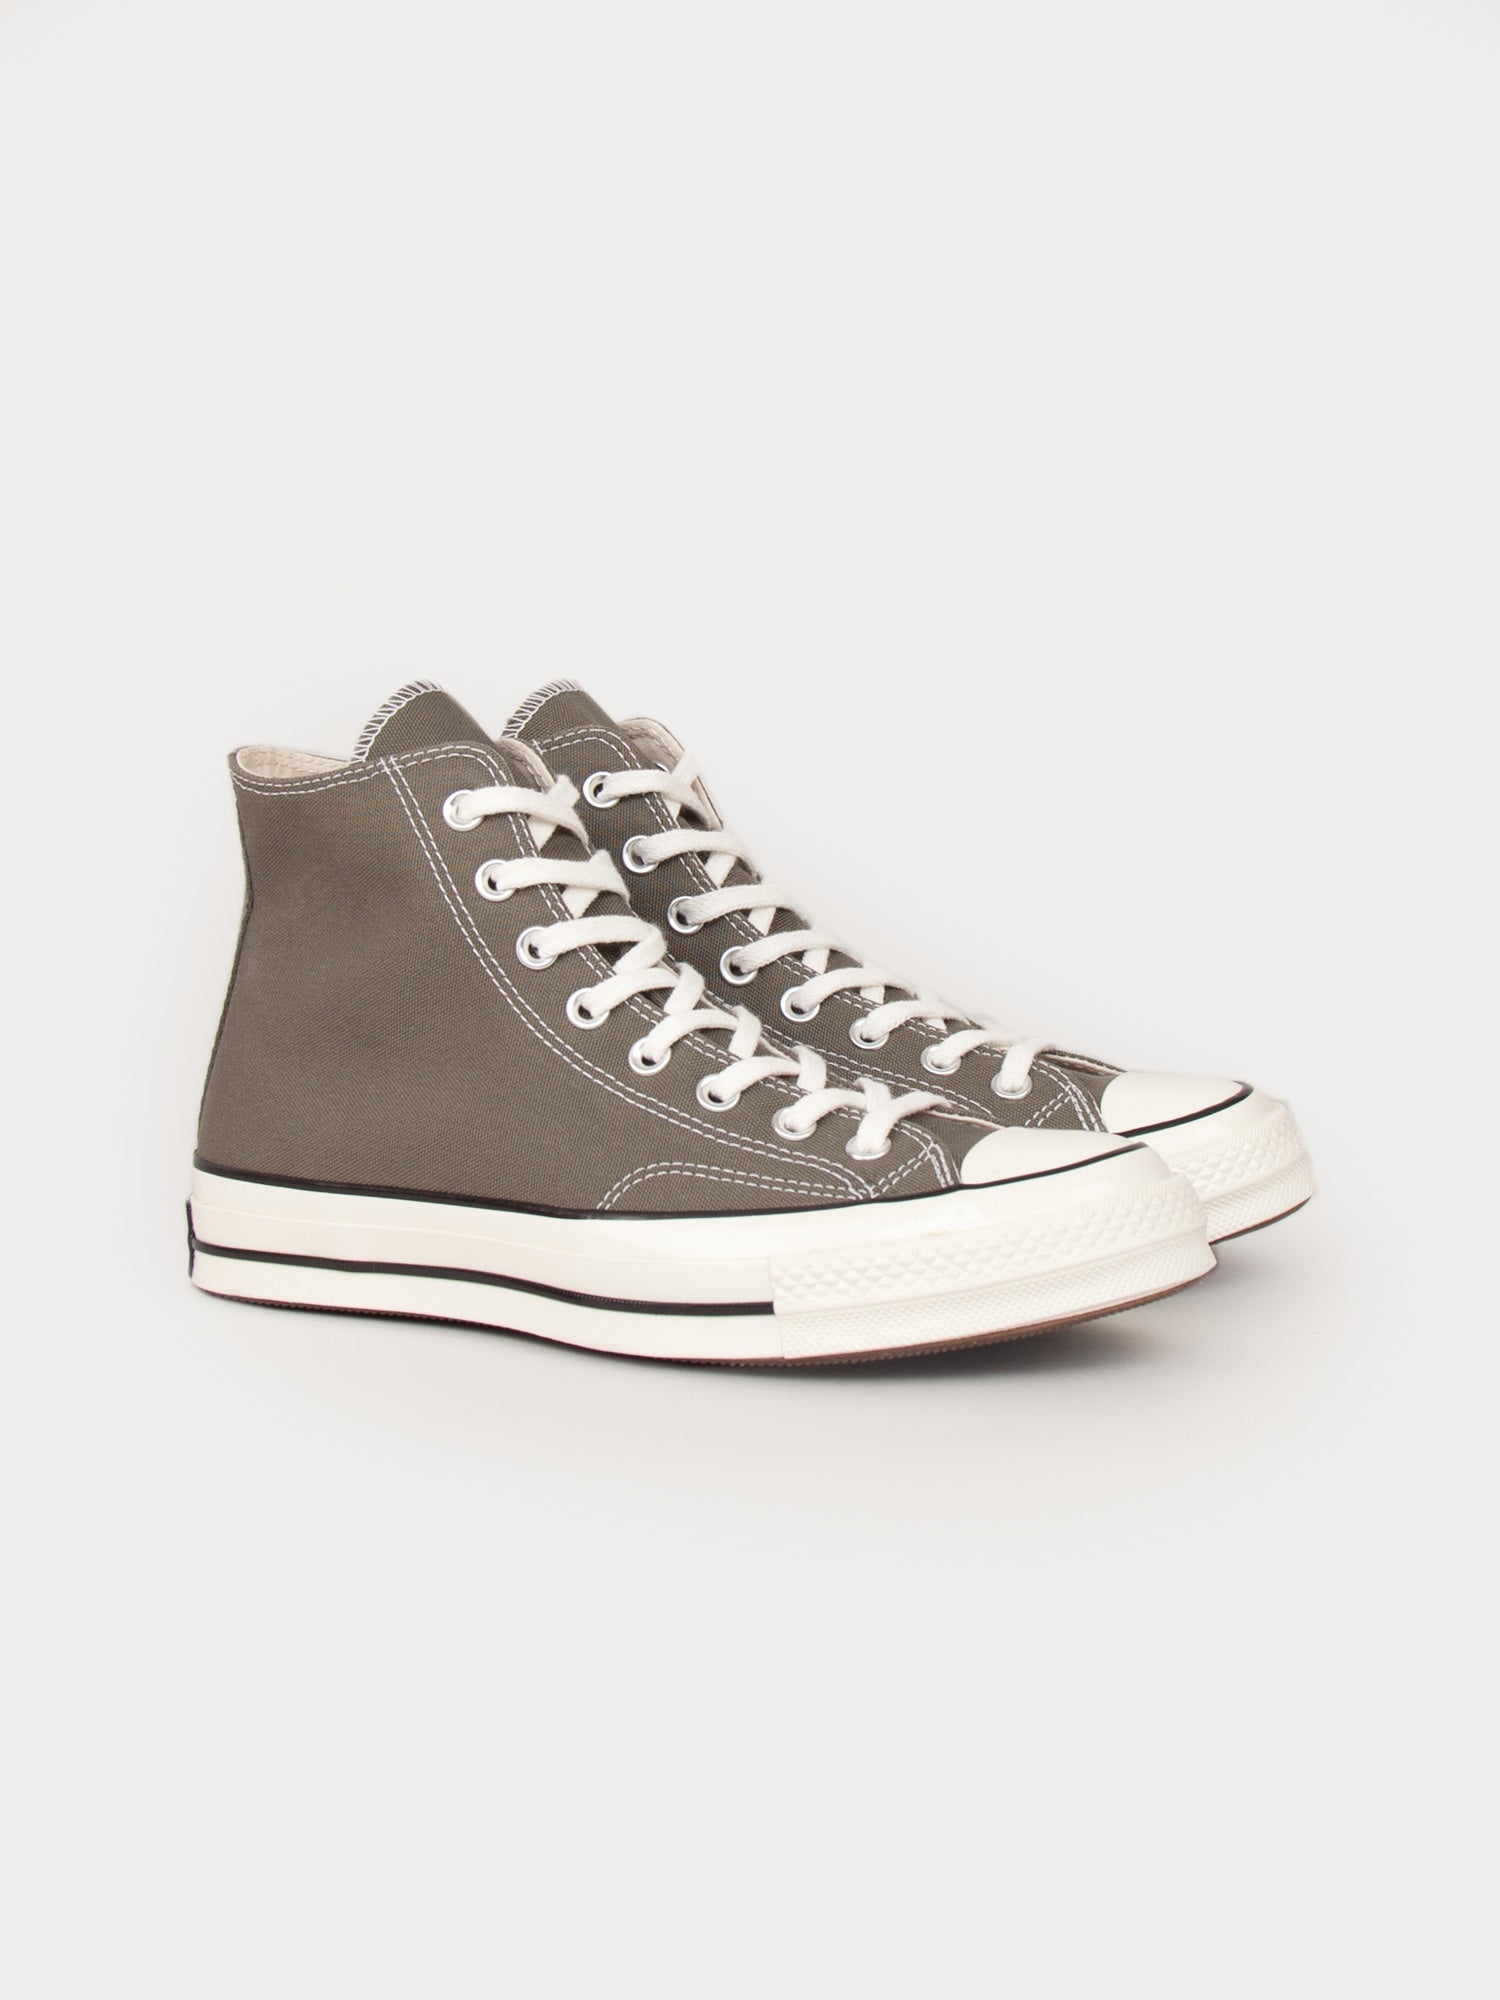 7ceb33ebb3b0 Converse-Chuck-Taylor-All-Star-70 -Hi- Field-Surplus -2.jpg v 1533122049